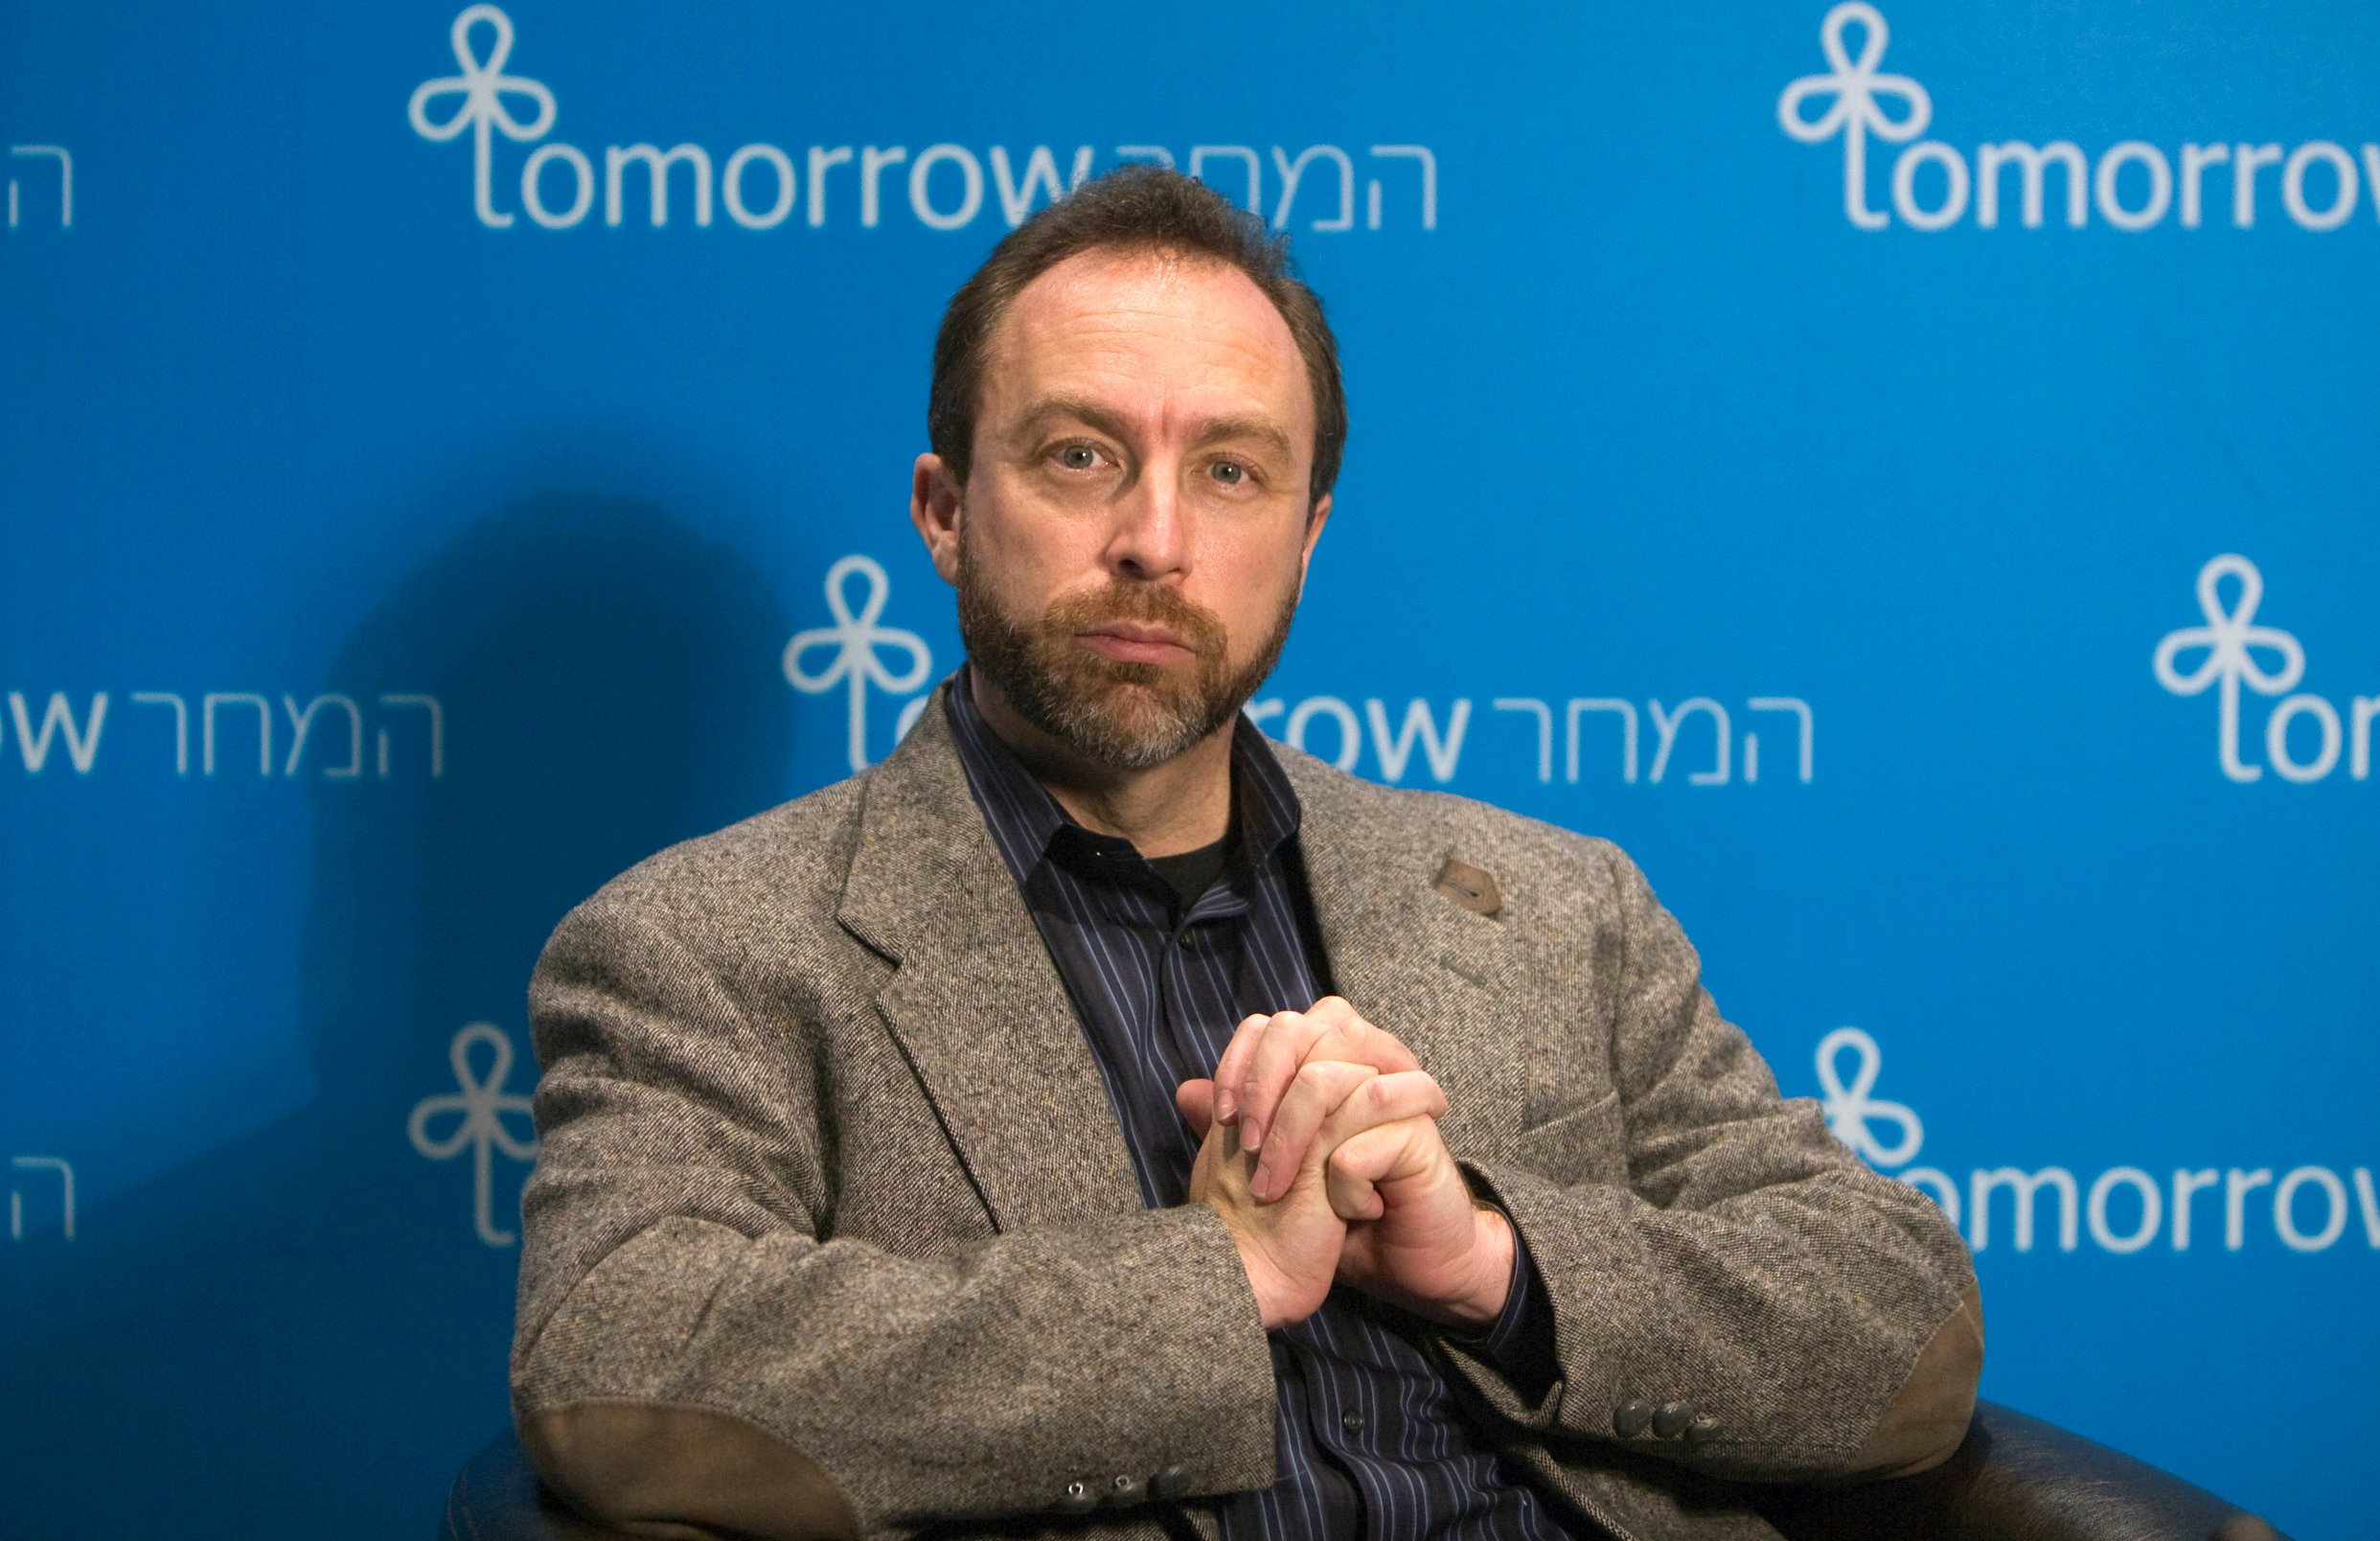 Wikipedia Founder Launches Ambitious Project to